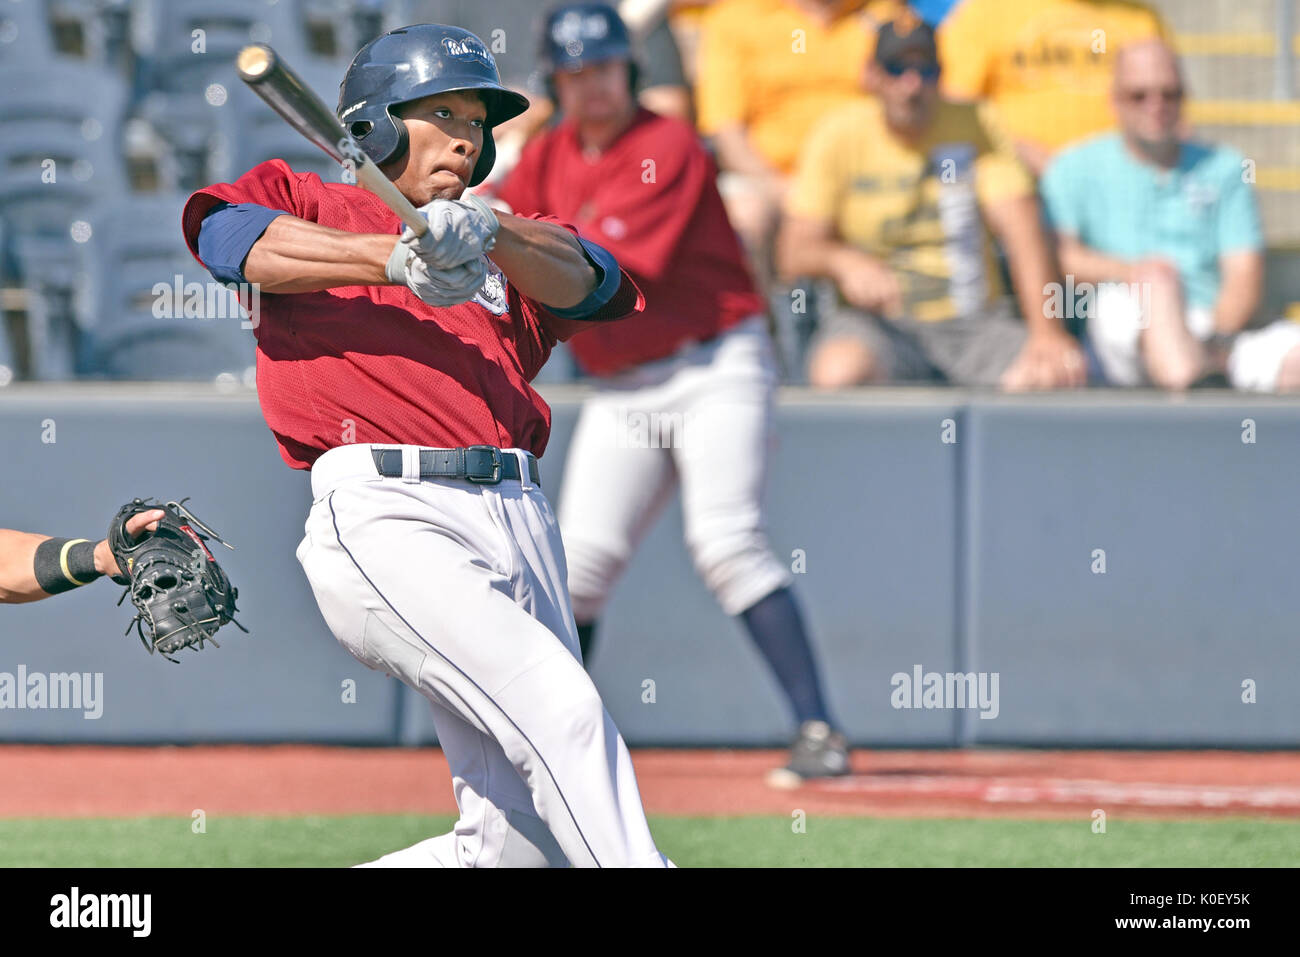 Morgantown, West Virginia, USA. 20th Aug, 2017. Mahoning Valley Scrappers right fielder WILL BENSON (7) during the August 20, 2017 New York-Penn league game at Monongalia County Ballpark in Morgantown, WV. Credit: Ken Inness/ZUMA Wire/Alamy Live News - Stock Image